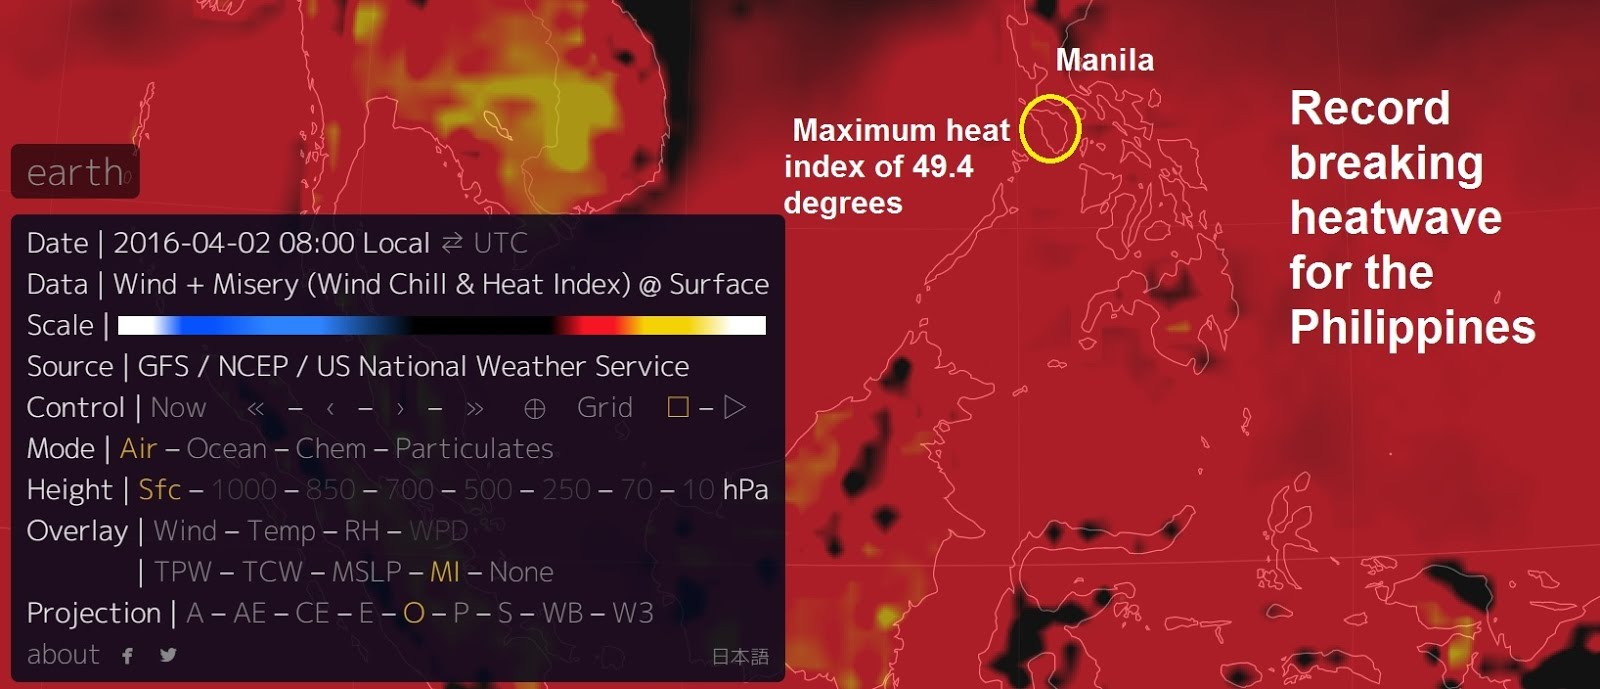 Heat Wave - Philippines: Heat index record broken as a scorching 49.4 degrees Celsius (121F) was...